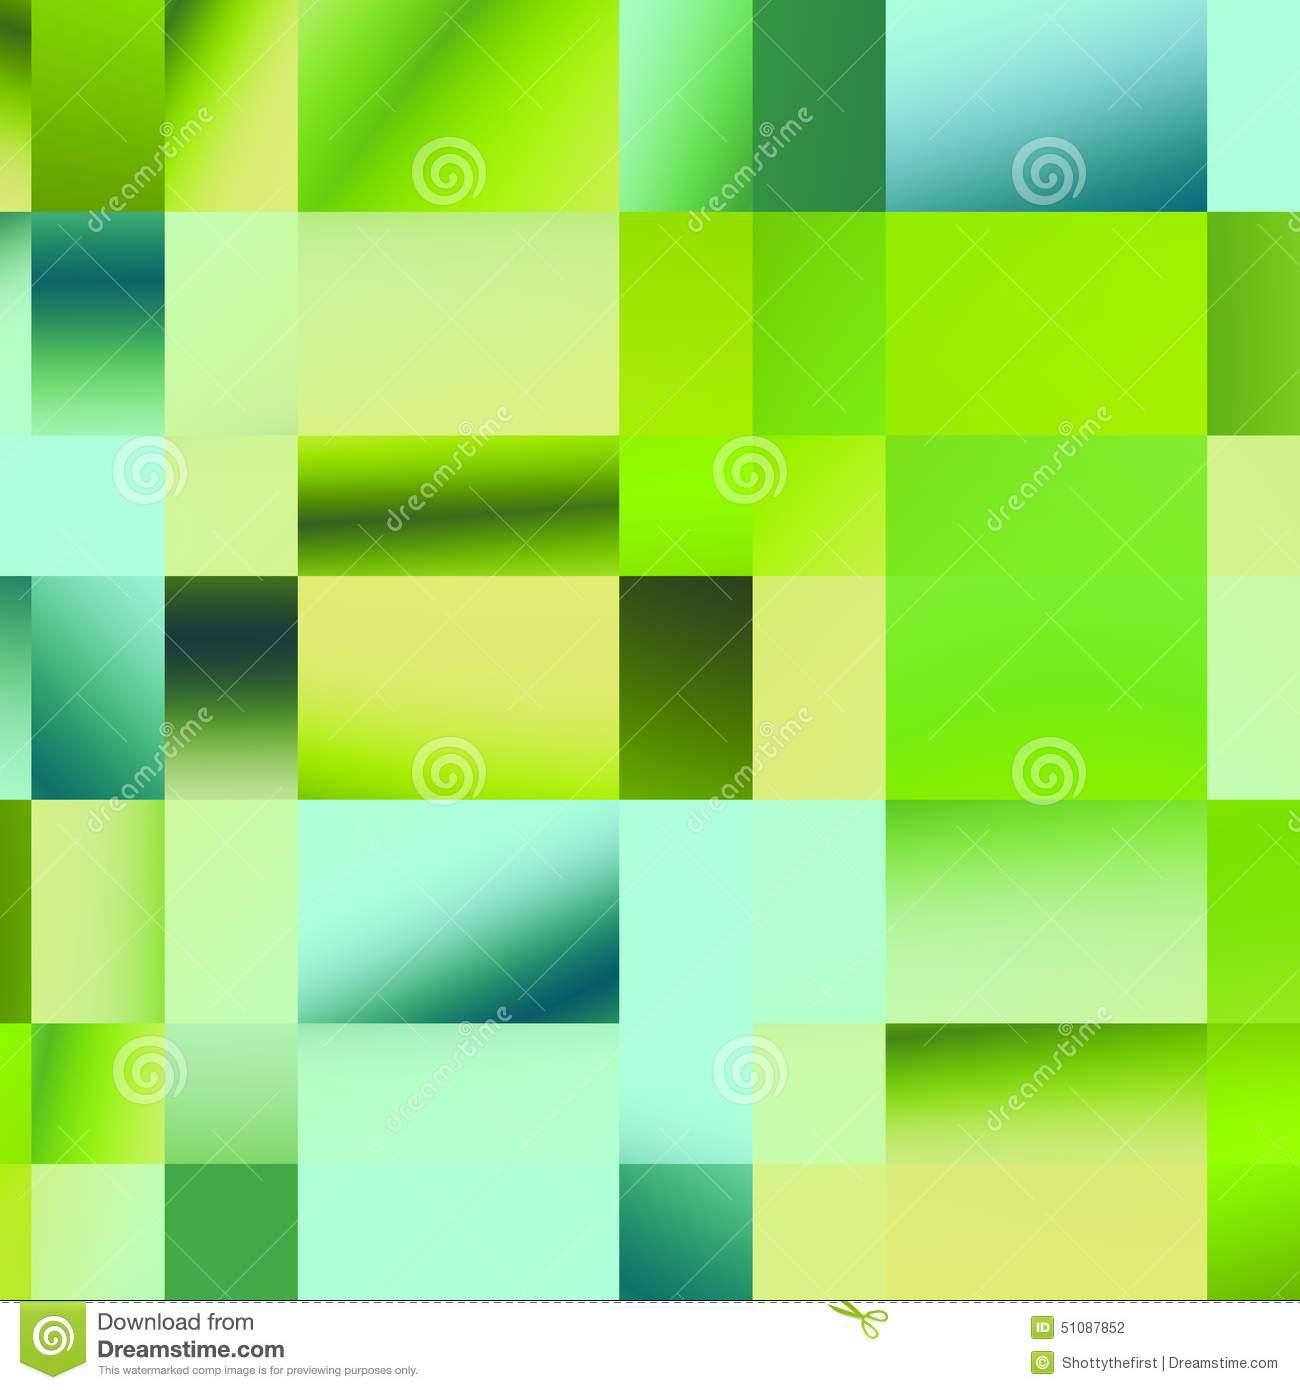 Plaid Green Pattern. Abstract Geometric Background. Colored Mosaic Illustration. Polygonal Design Elements. Different Shapes.